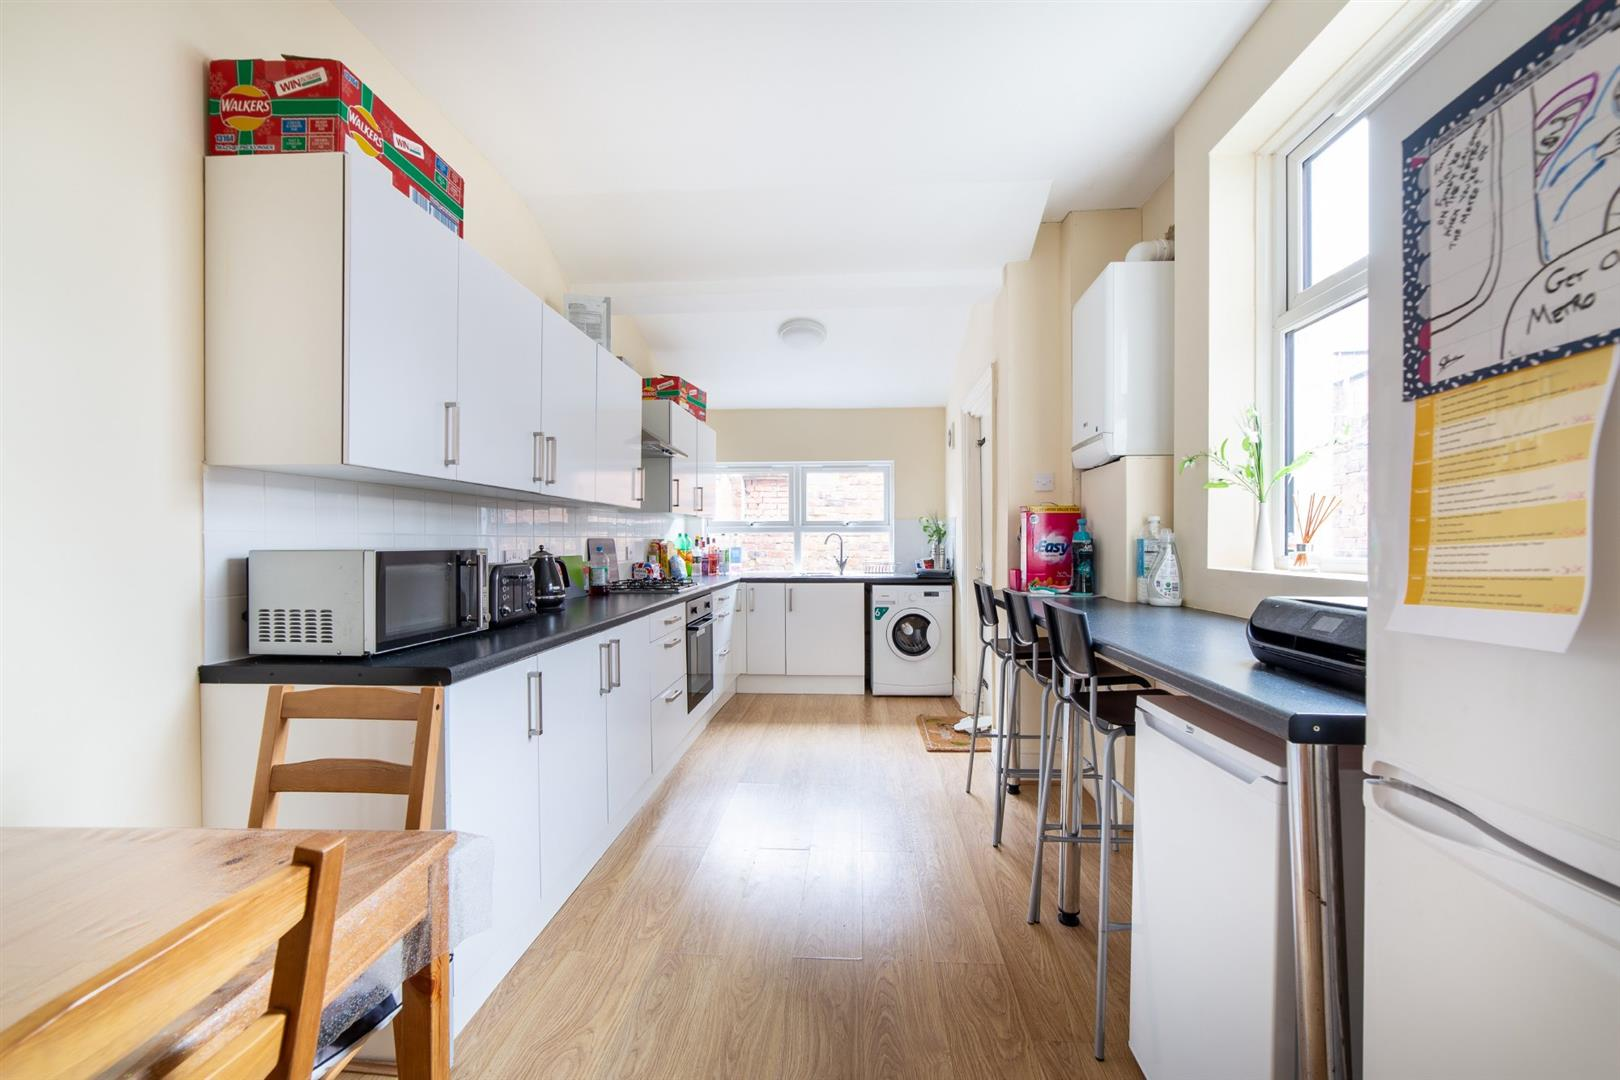 4 bed terraced house for sale in Newcastle Upon Tyne, NE6 5HS 0